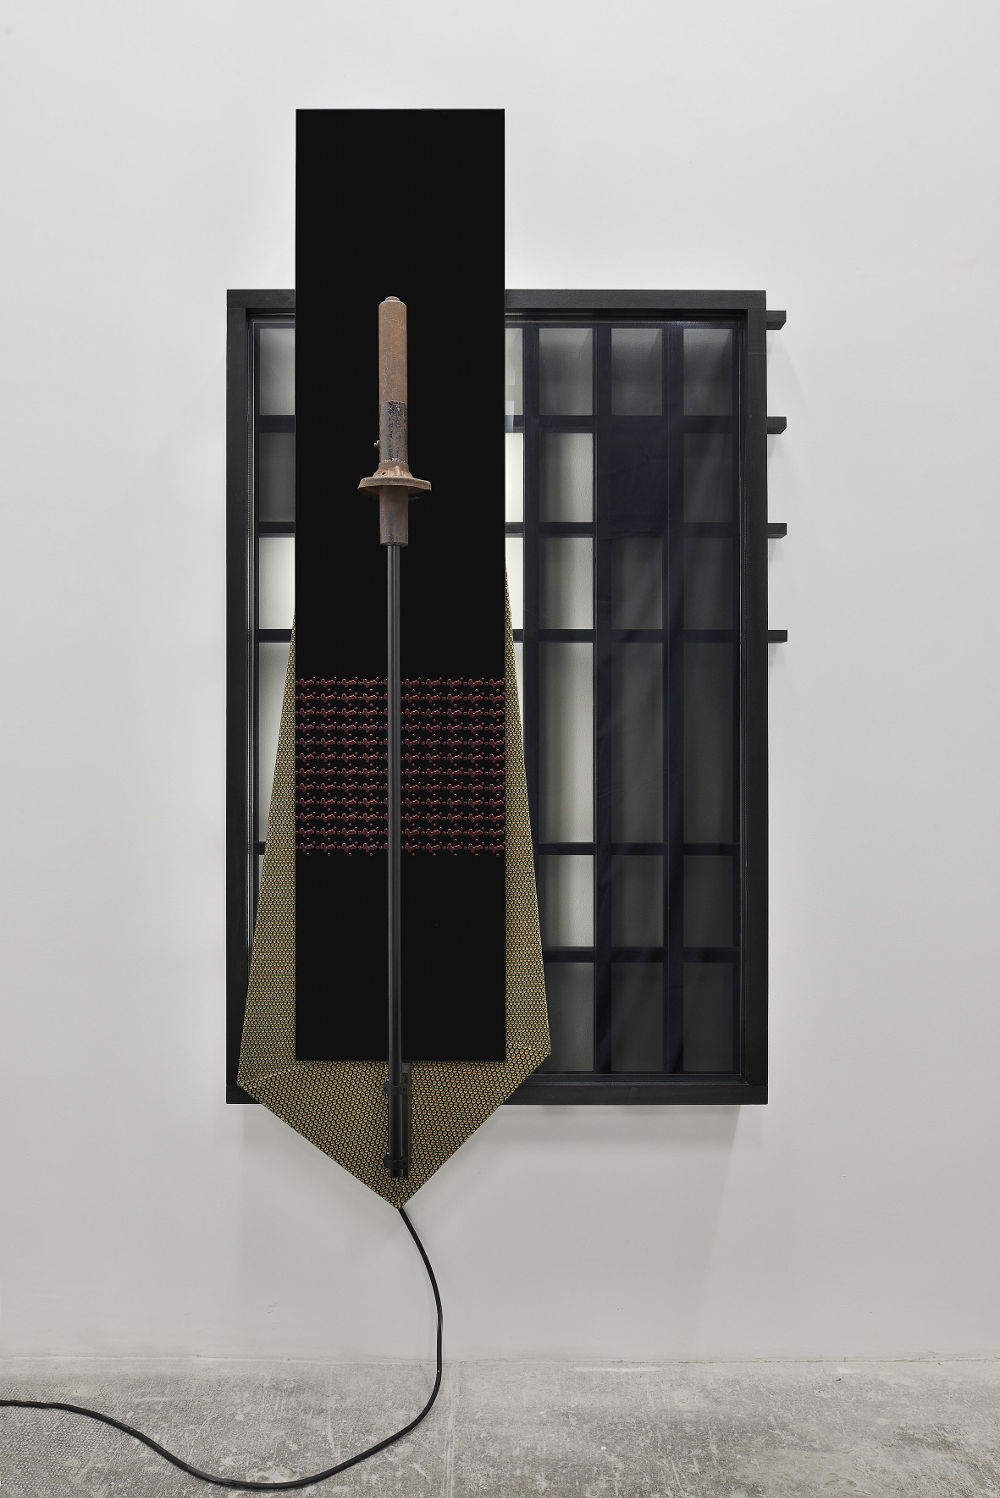 James Beckett, Tara Brown 1, 2017. Wood, UV printed glass, custom made Guinness velvet, steel rod, car part from Lotus Elan, 1600, Type 26 S1 Roadster (same model Tara Brown crashed) / legno, stampa UV su vetro, velluto Guinness fatto su misura, asta d'acciaio, pezzo di macchina modello Lotus Elan, 1600, Type 26 S1 Roadster (lo stesso modello di macchina incidentato da Tara Brown) 211 x 105 x 34 cm (83 ⅛